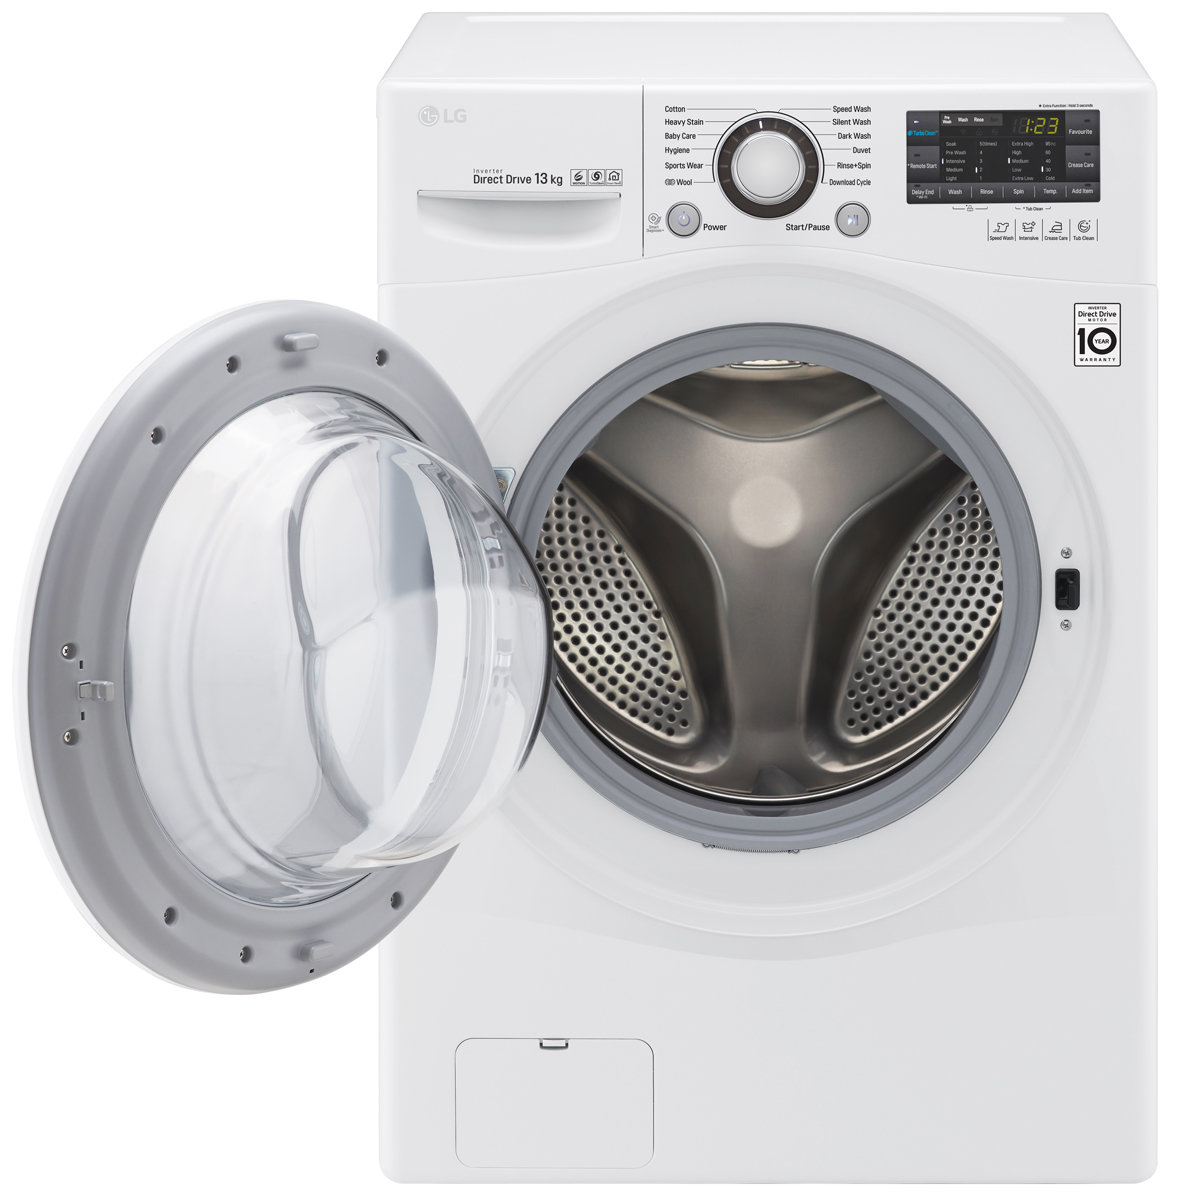 d9222feec837d LG WD1013NDW 13kg Front Load Washing Machine with Turbo Clean ...